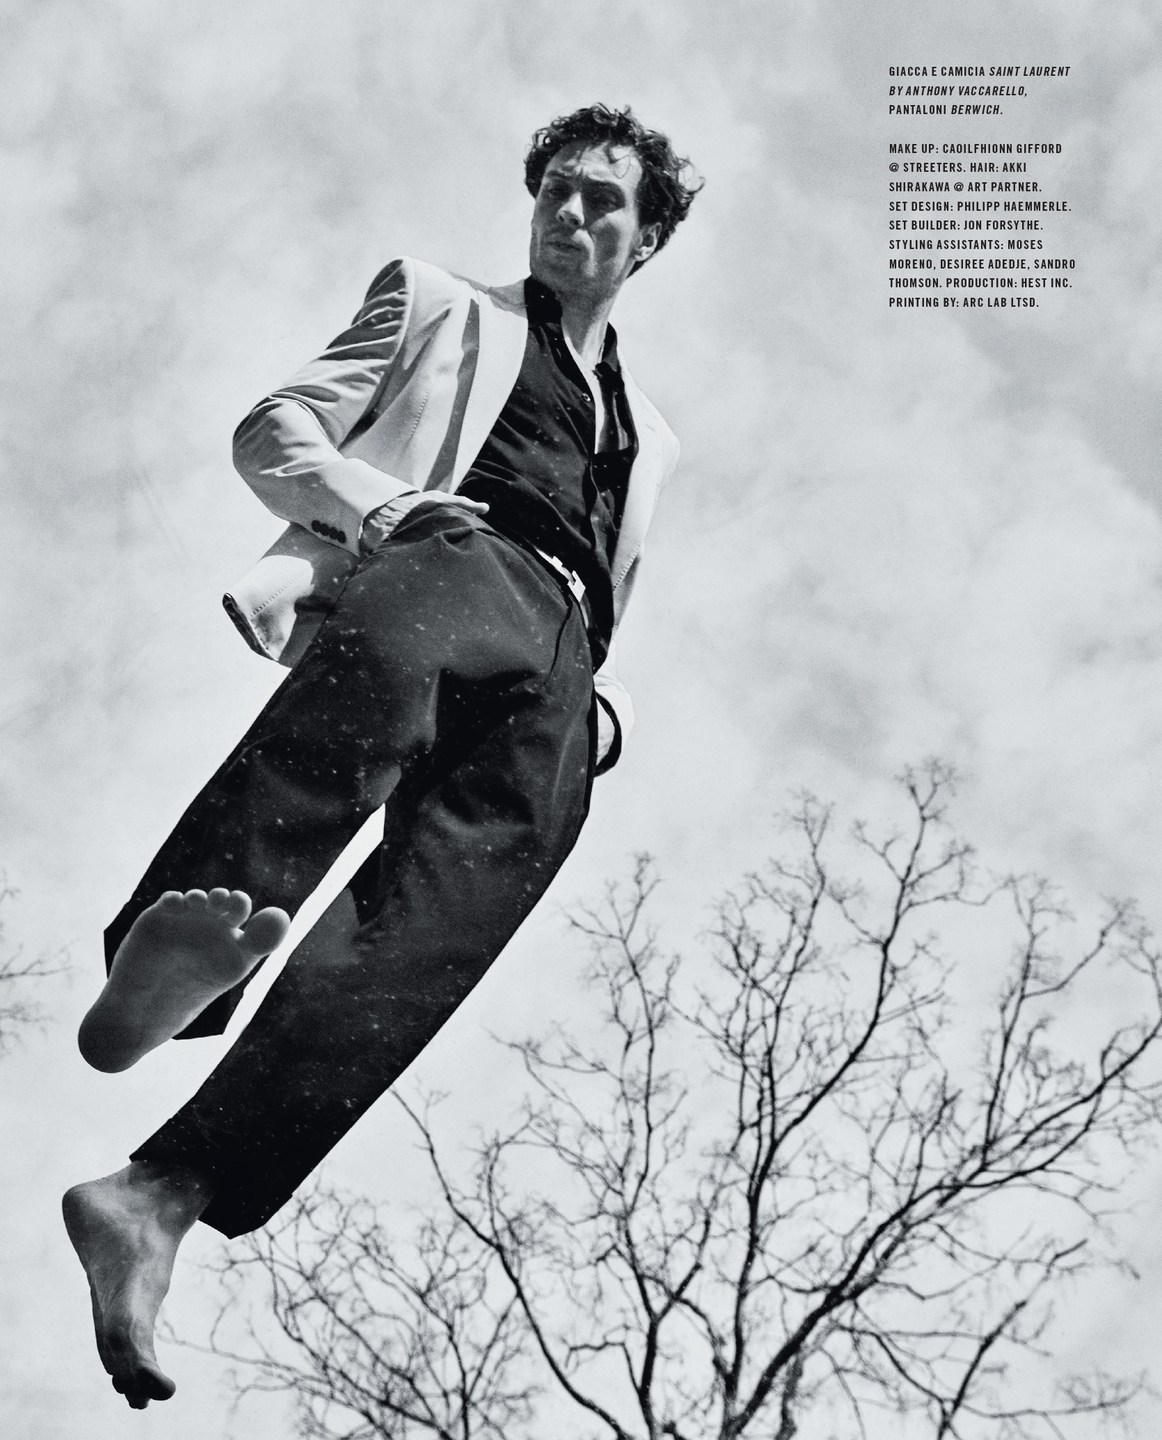 AARON TAYLOR-JOHNSON STYLED BY GEORGE CORTINA PHOTOGRAPHY BY MARIO SORRENTI BELTS BY A. JASON ROSS